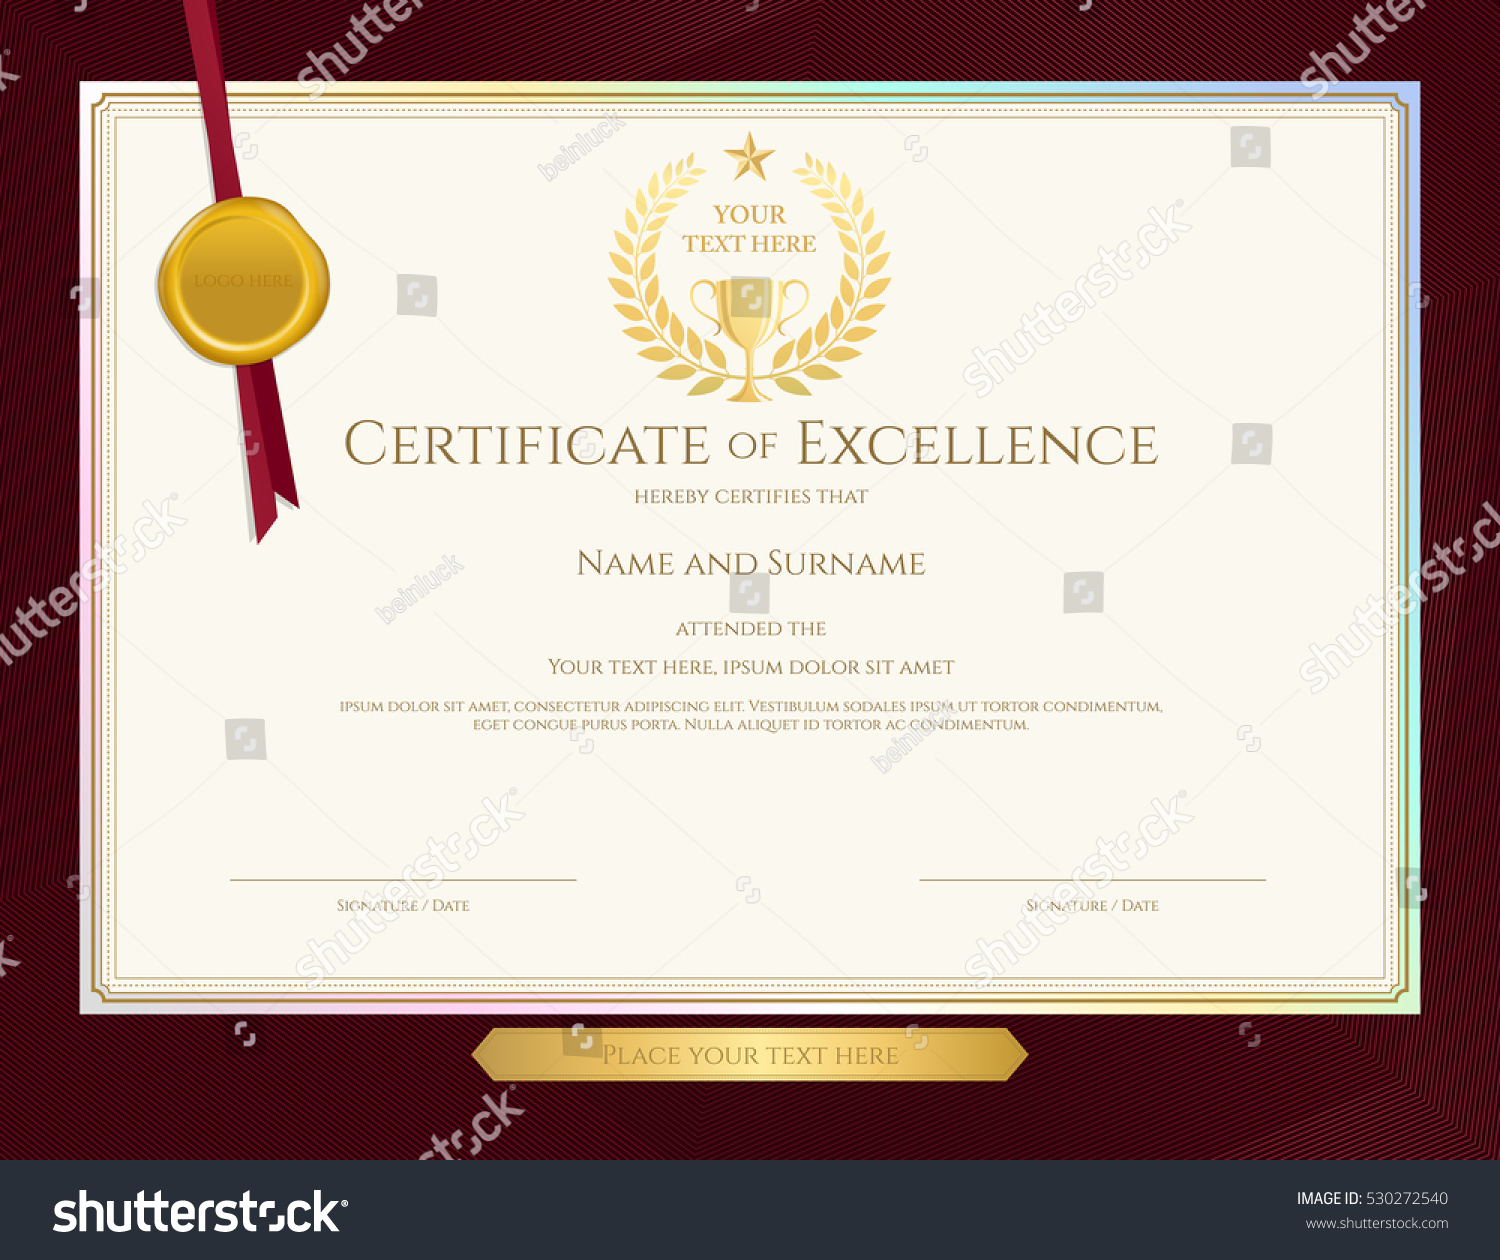 Elegant certificate template excellence achievement appreciation elegant certificate template for excellence achievement appreciation or completion on red border background xflitez Image collections